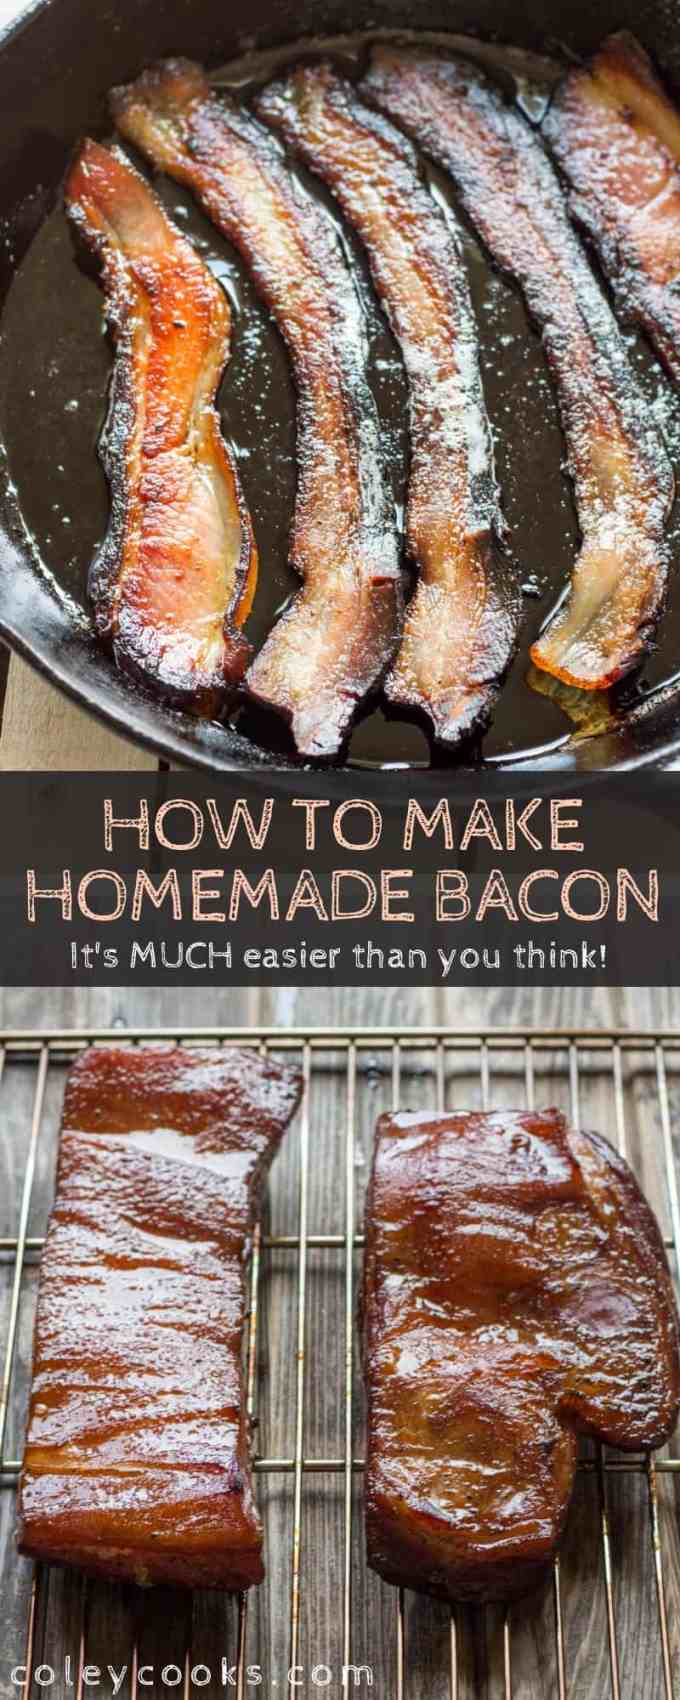 Learn to cure and smoke your own bacon at home with this simple tutorial.This recipe for homemade bacon is so much easier than you might think! #easy #homemade #bacon #smoked #pork #recipe | ColeyCooks.com